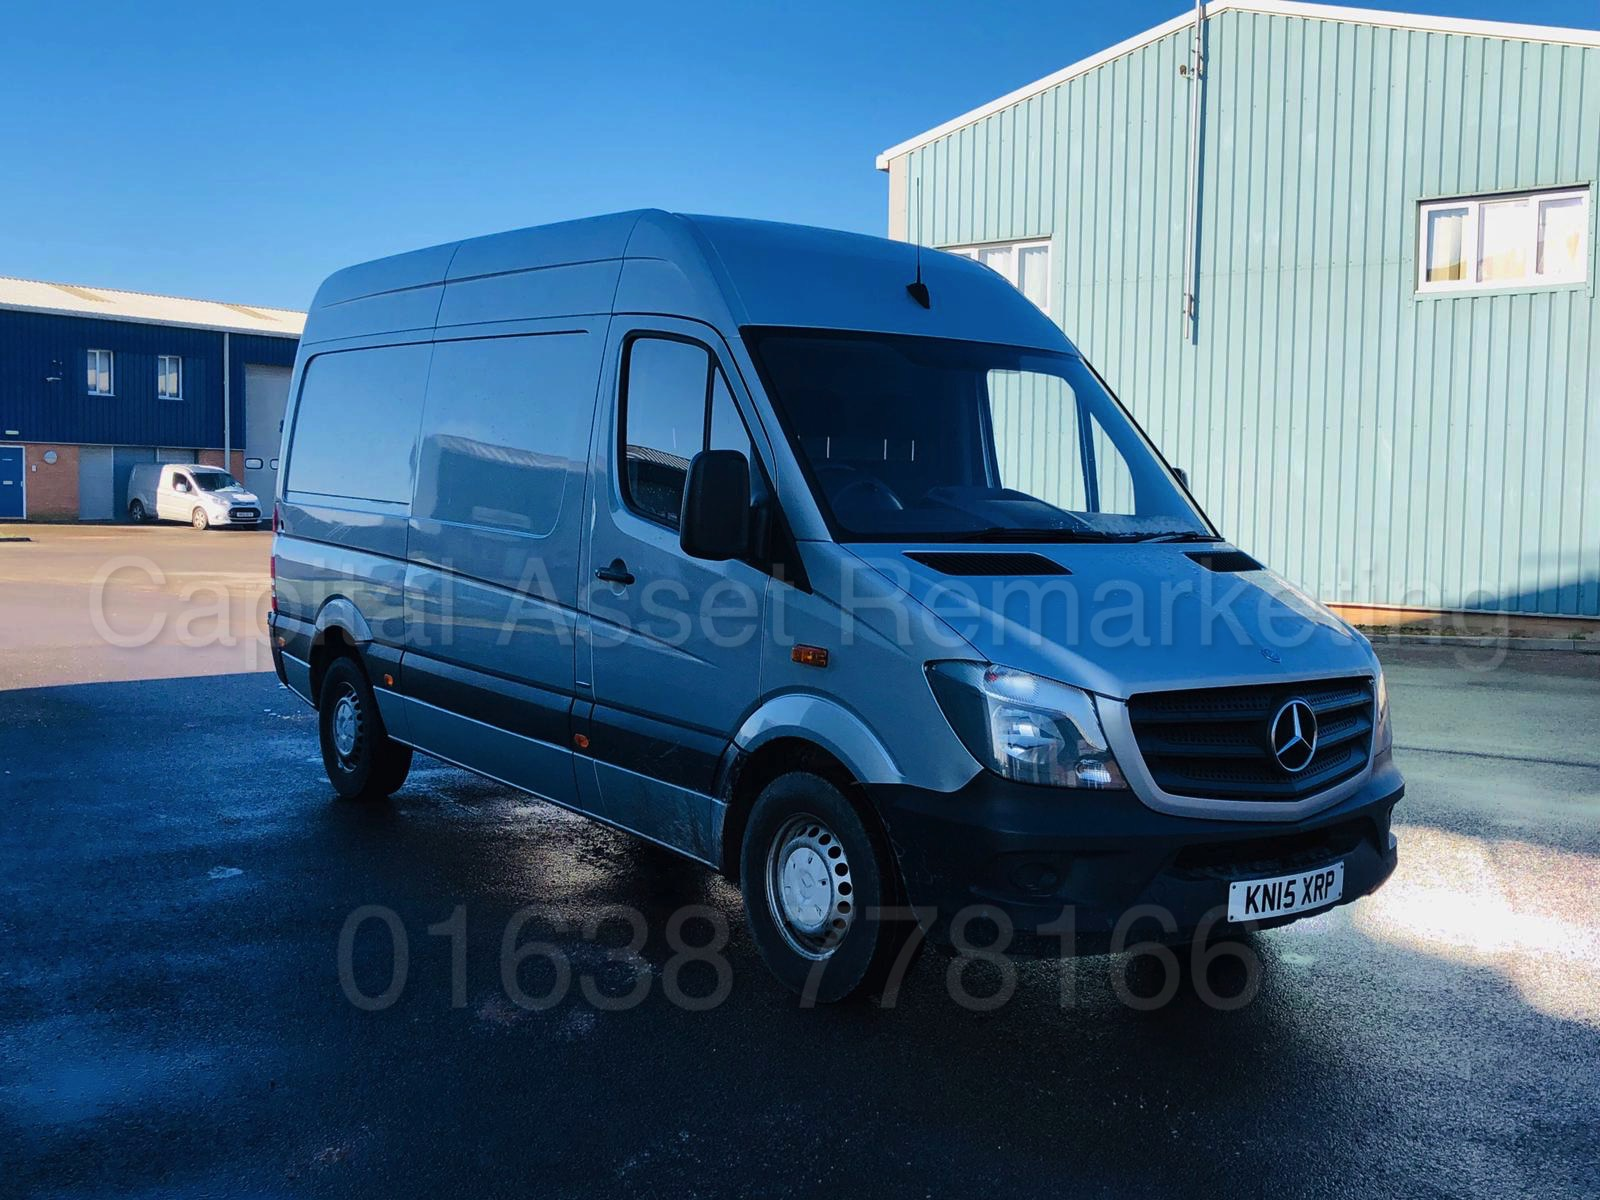 Lot 18 - (ON SALE) MERCEDES-BENZ SPRINTER 313 CDI *MWB HI-ROOF* (2015 - NEW MODEL) '130 BHP' **LOW MILES**